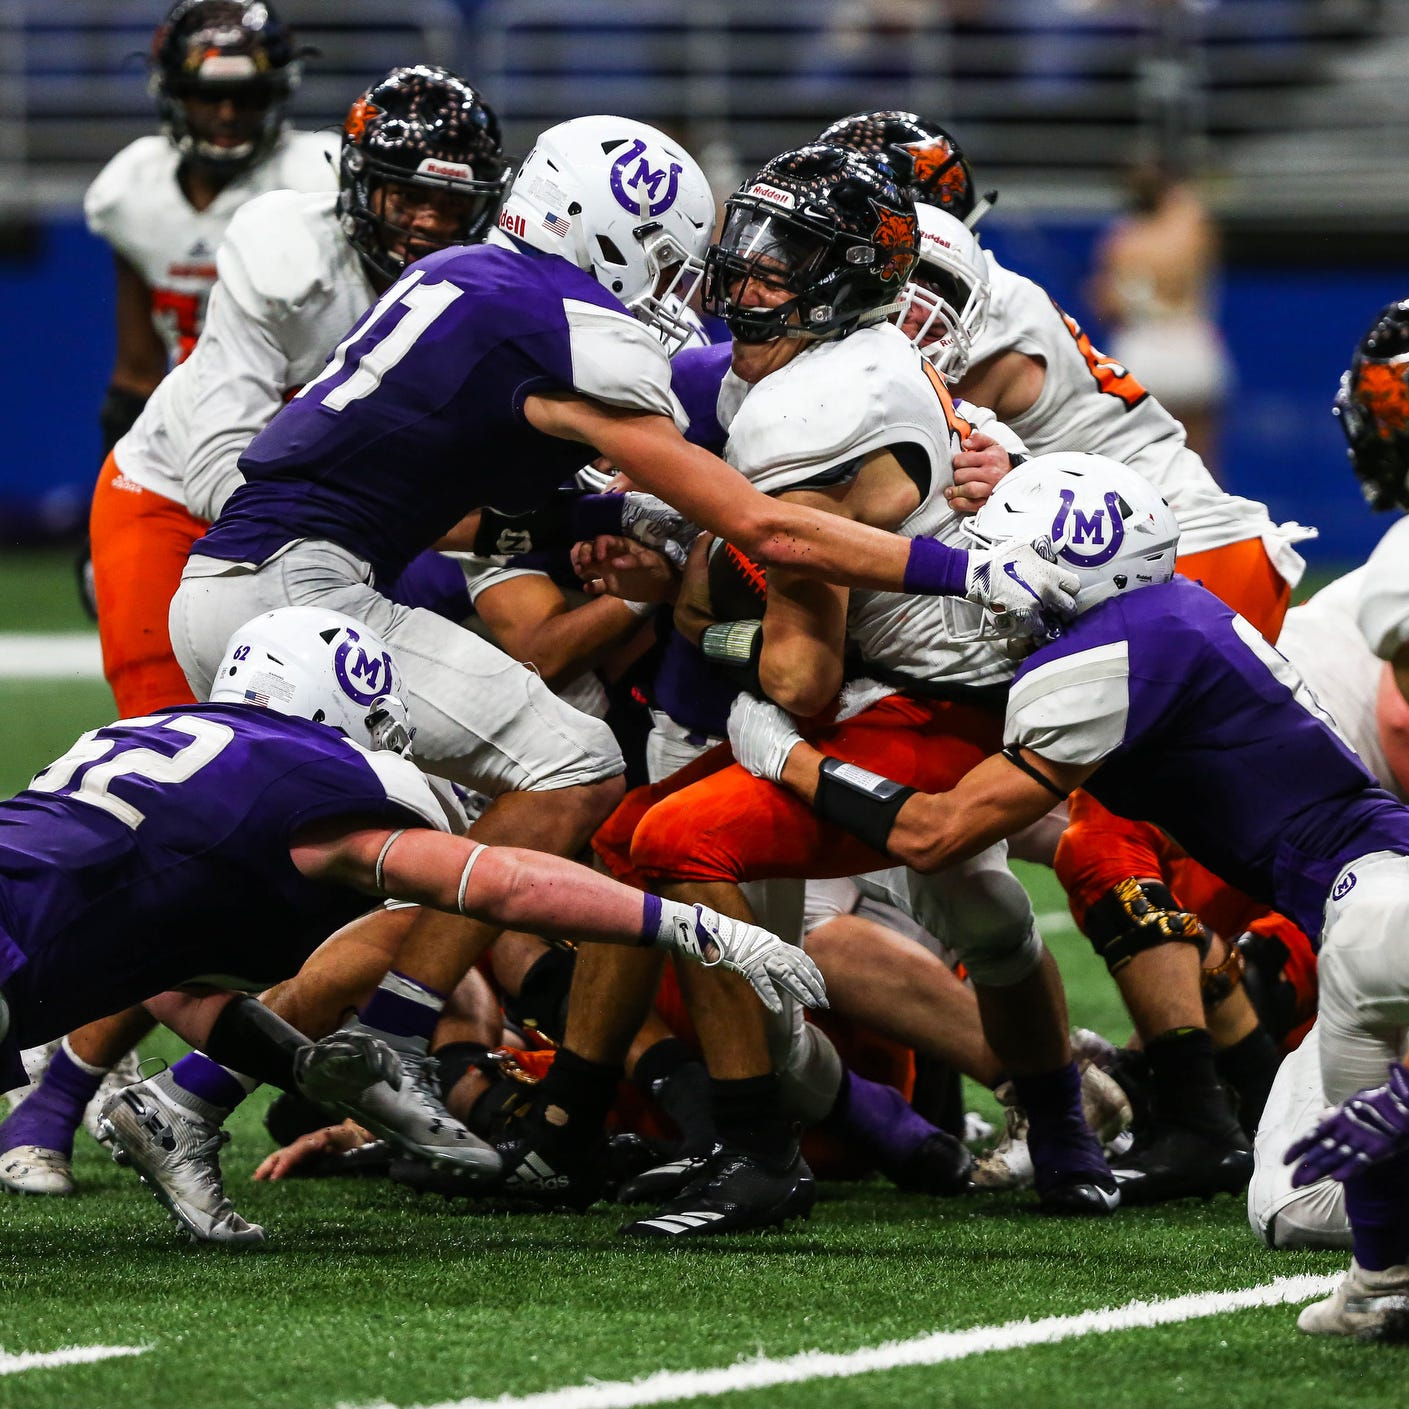 Goal-line stand propels Mason past Refugio in Class 2A state quarterfinals